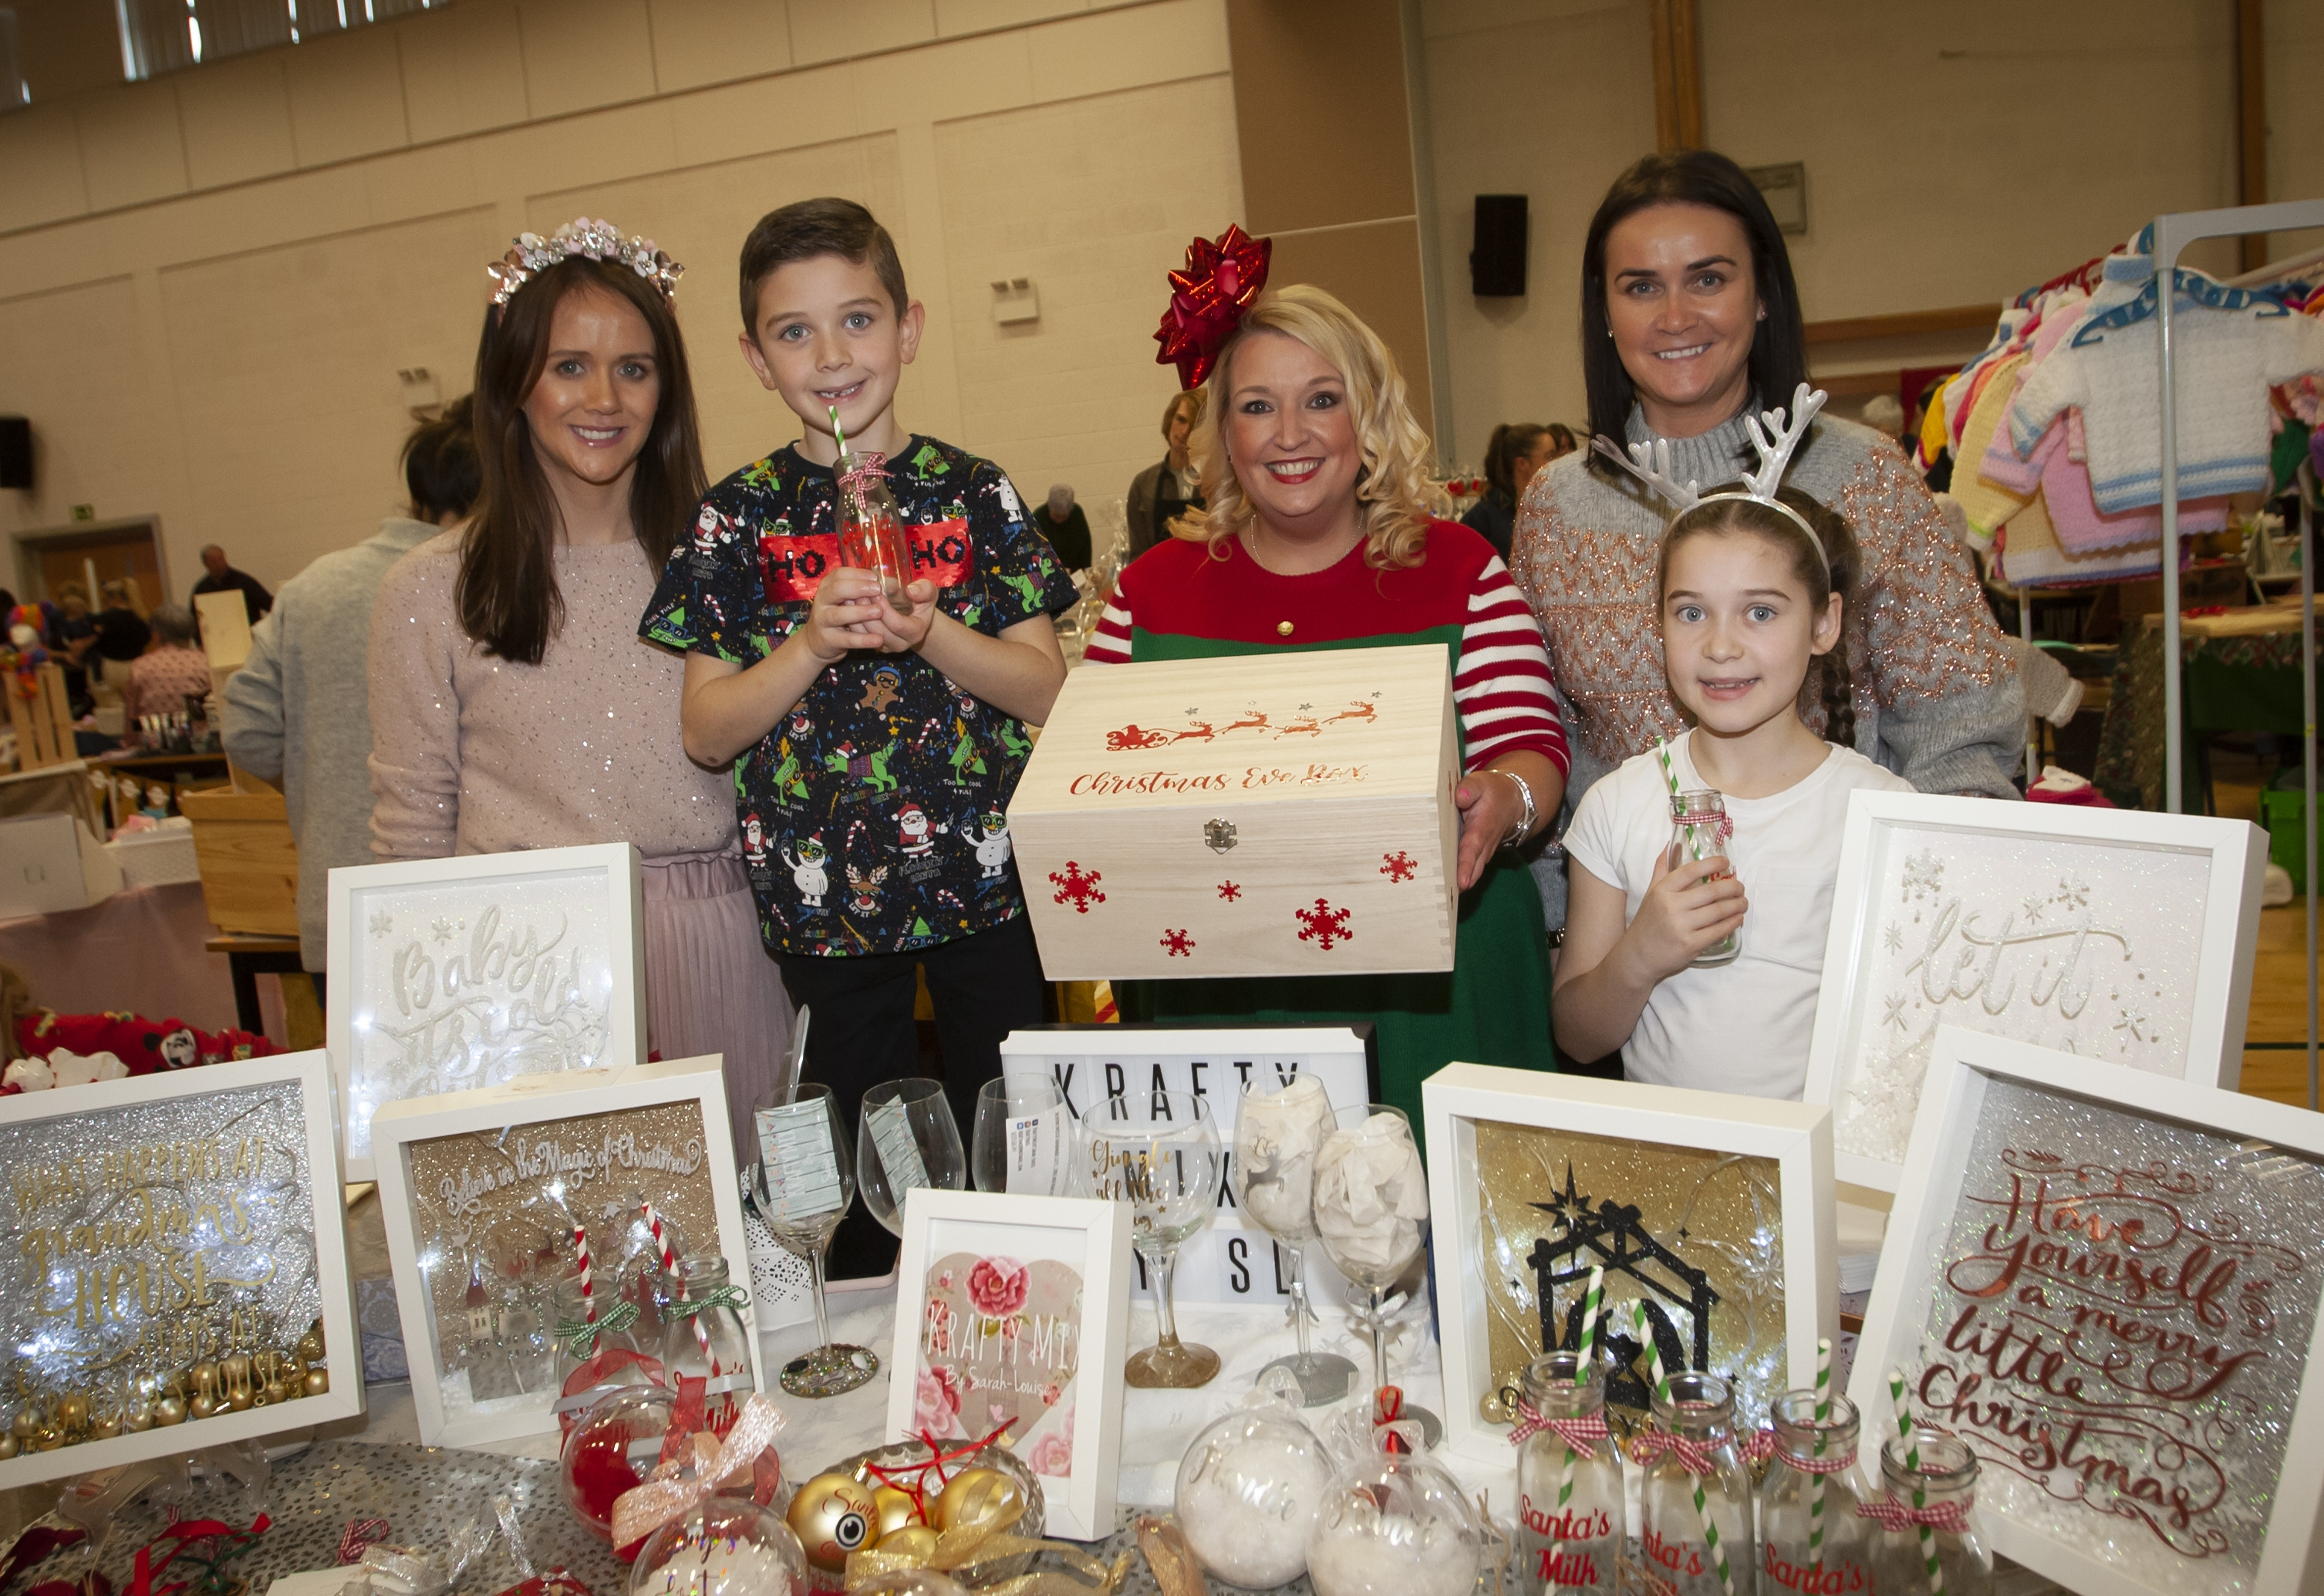 Pictured at the Krafty Mix stall during Saturday's St. Mary's Annual Christmas Craft Fair are from left, Sarah Louise Nolan, Roisin Rice, Colleen Gibbons and Colleen's children Kian and Darcy.